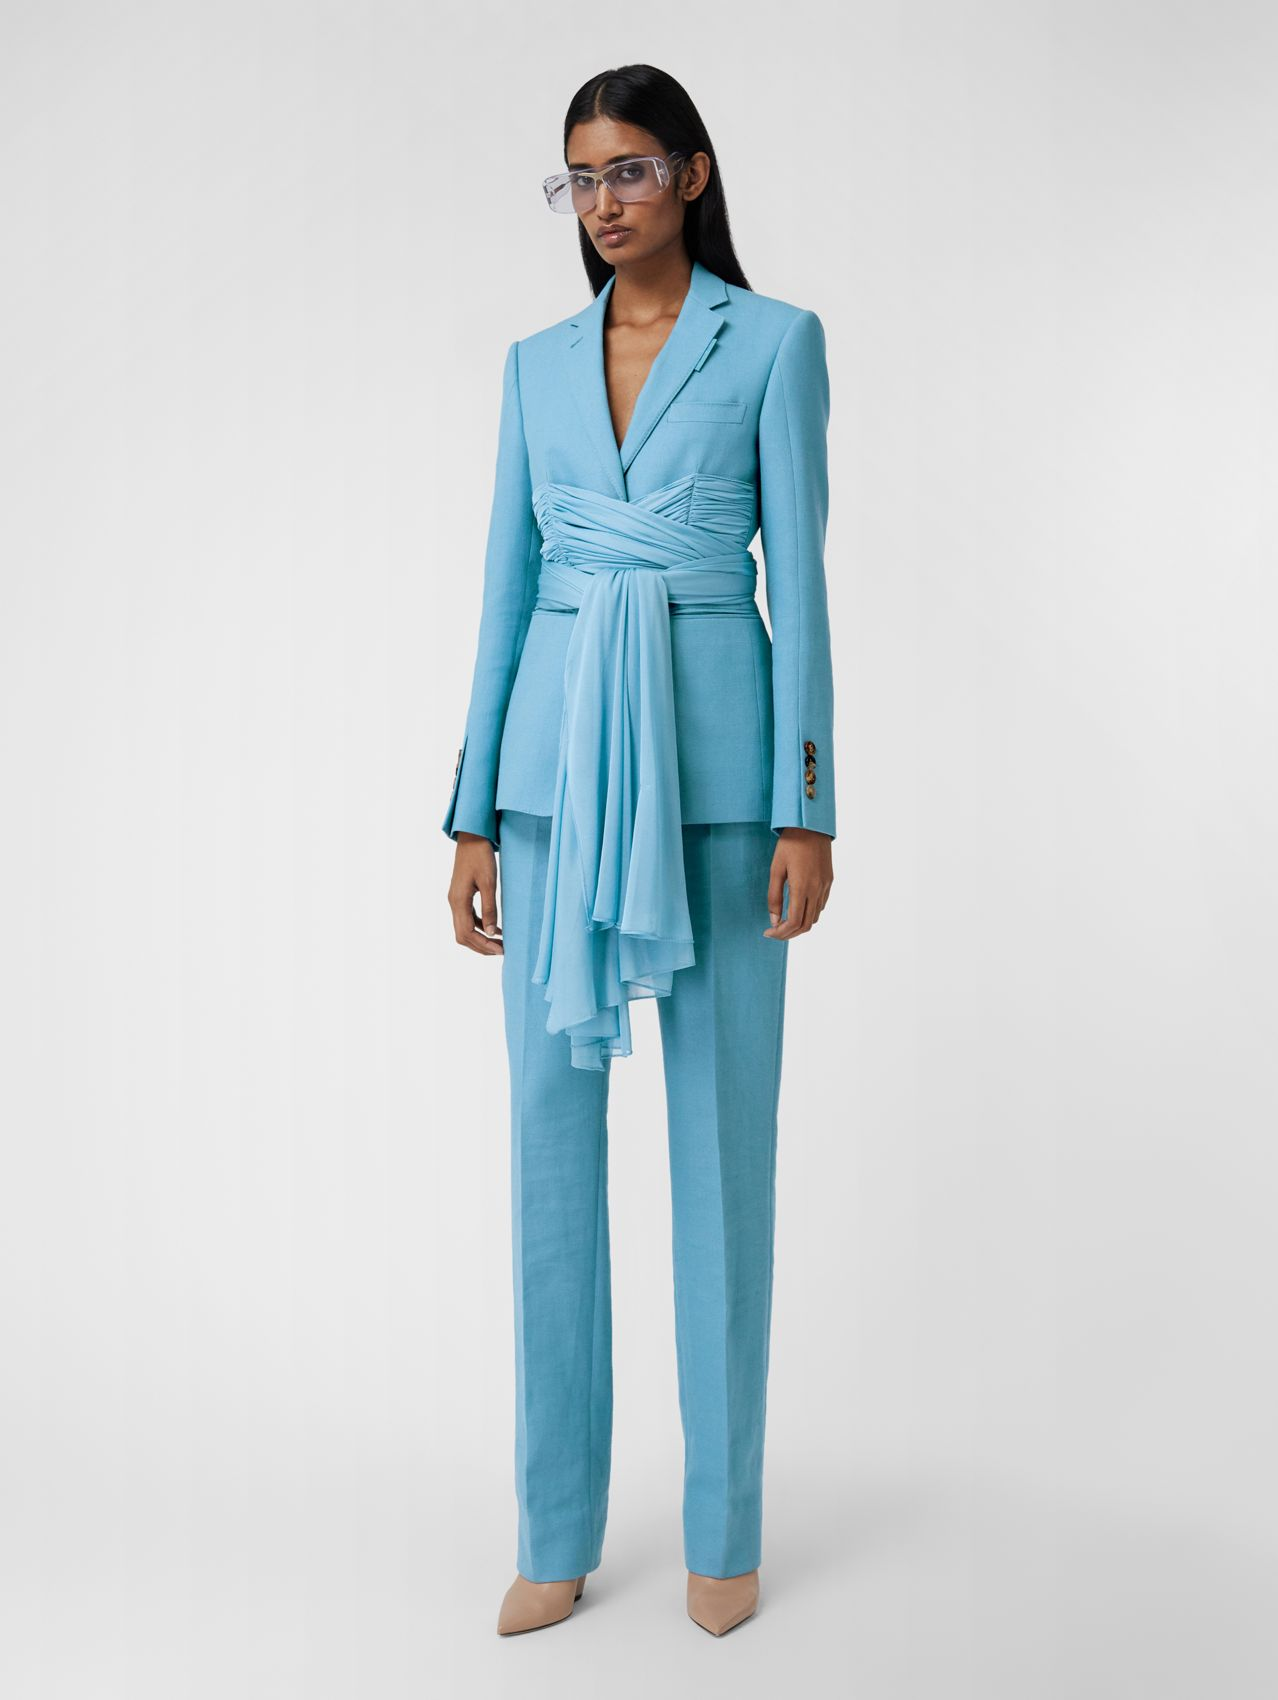 Jersey Sash Detail Wool Ramie Tailored Jacket in Blue Topaz